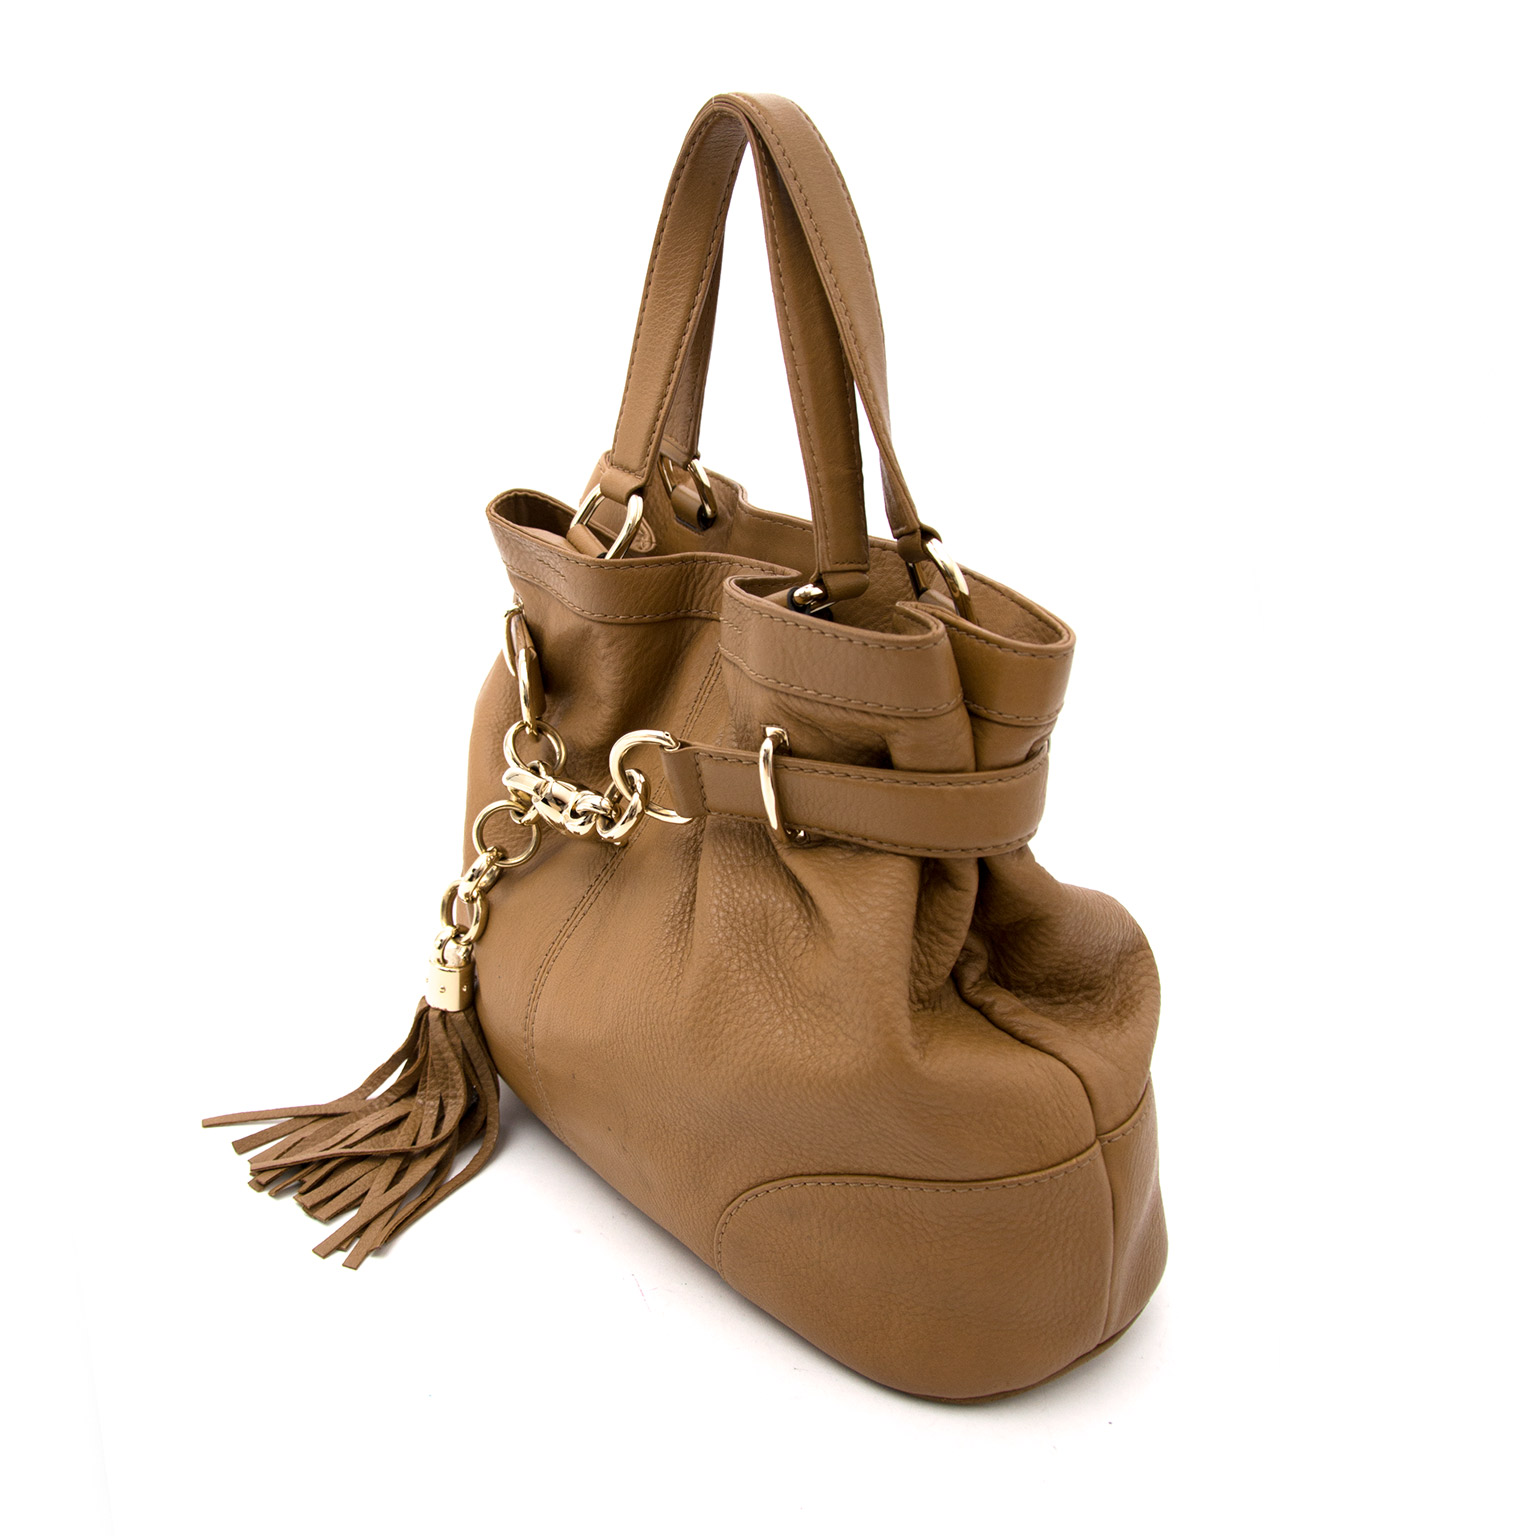 gucci brown bamboo tassel bag now online at labellov.com for the best price